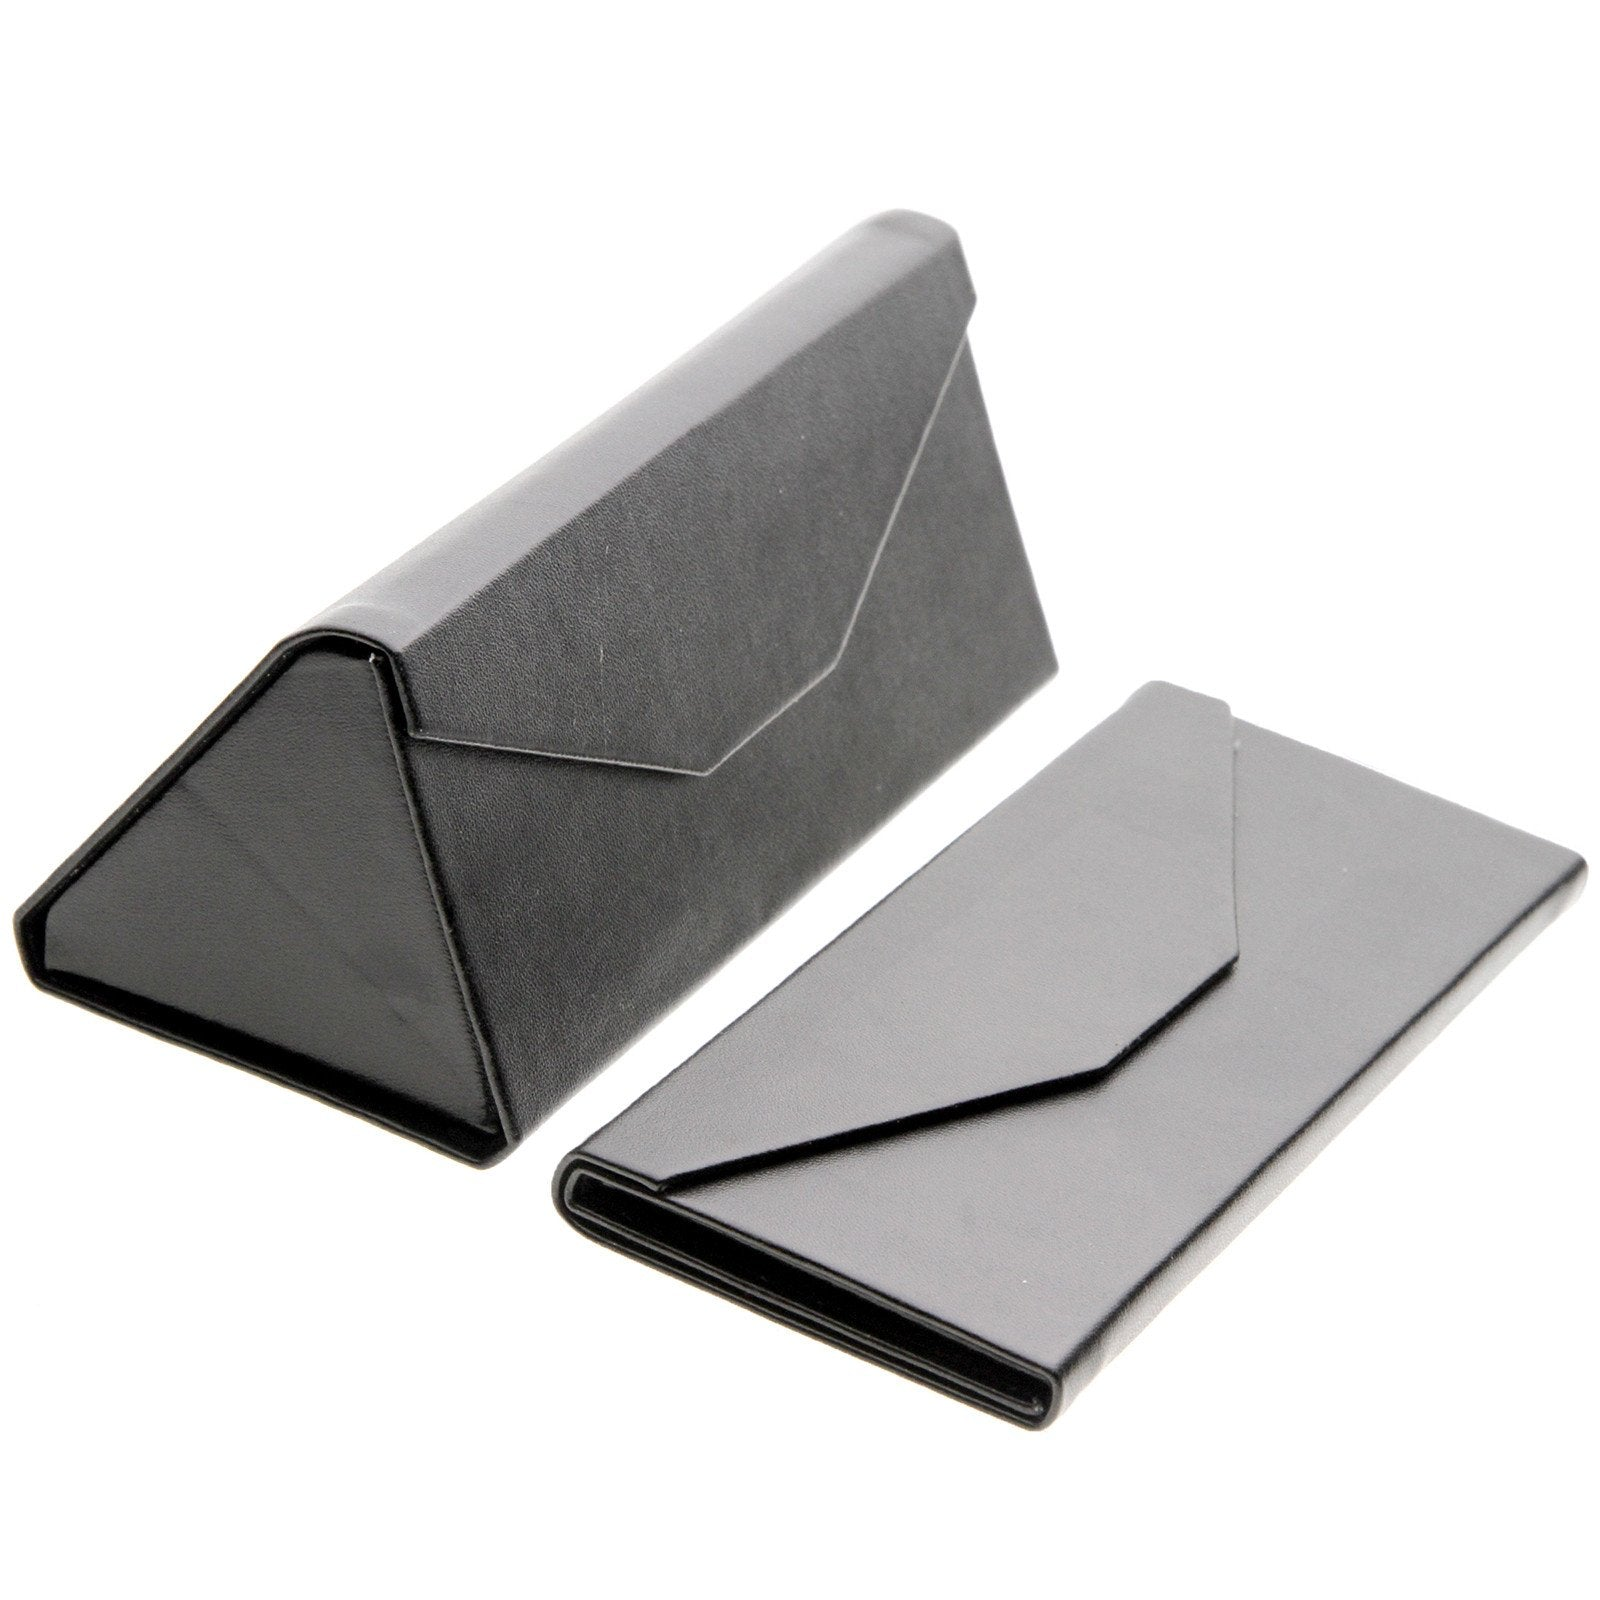 Modern Low Profile Tri Folding Triangle Sunglasses Case